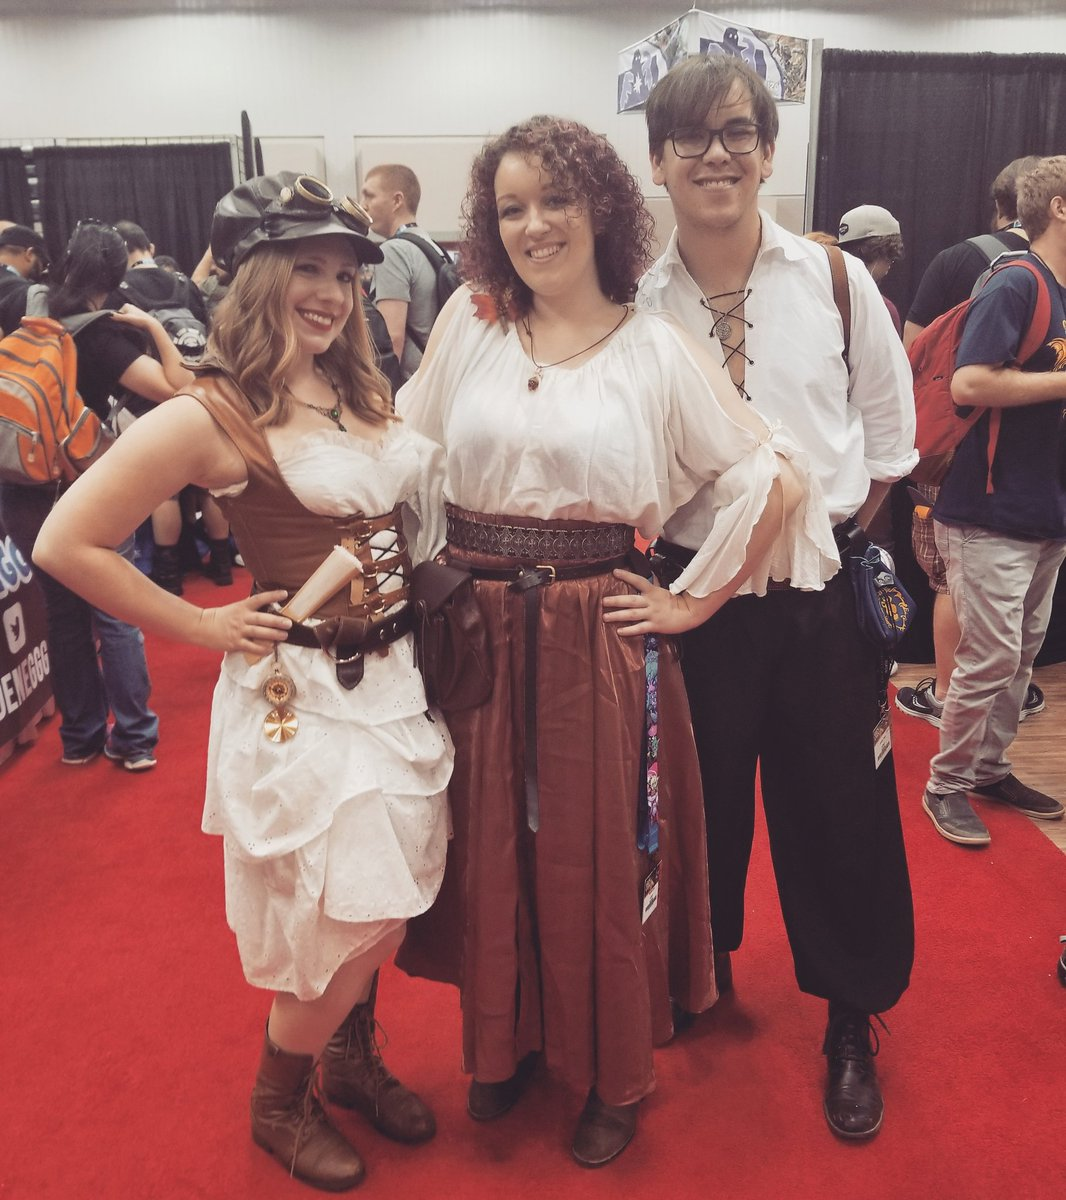 #Event Awesome of the Day: #Steampunk ⚙️ #Cosplay 🎩 at @Gen_Con (Aug 2-5, 2018) in #Indianapolis #IN #USA 🇺🇸 via @CskimCosplay #SamaEvent 📌 #SamaCosplay